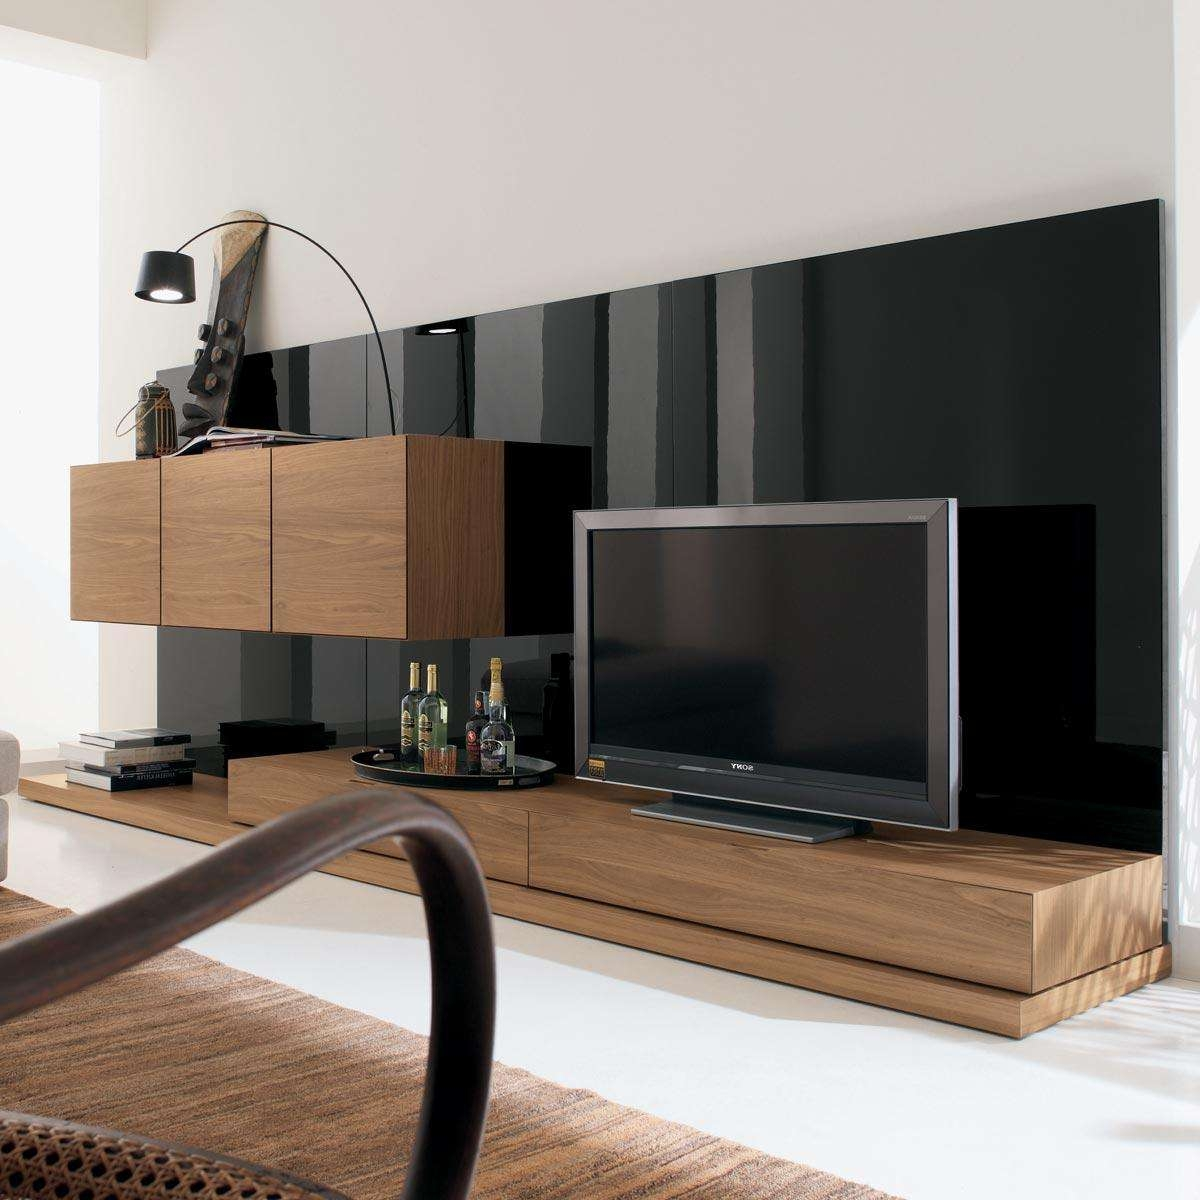 Modern Nature Wood Big Screen Tv Stand Wall Mounted Living Room With Wooden Tv Stands And Cabinets (View 11 of 15)